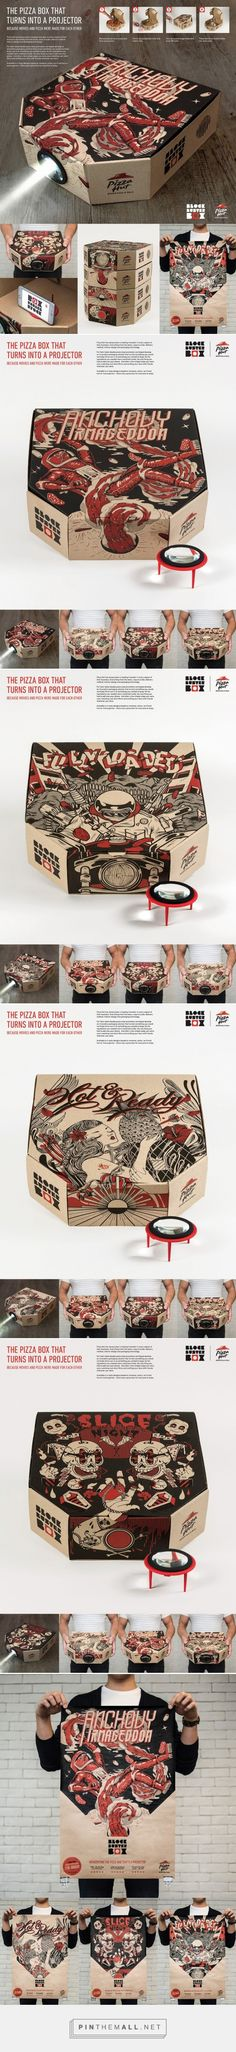 Turn your ‪#‎pizzahut‬ box into a ‪#‎projector‬! Designed by Ogilvy & Mather Hong Kong - http://www.packagingoftheworld.com/2015/05/pizza-hut-block-buster-project-box.html